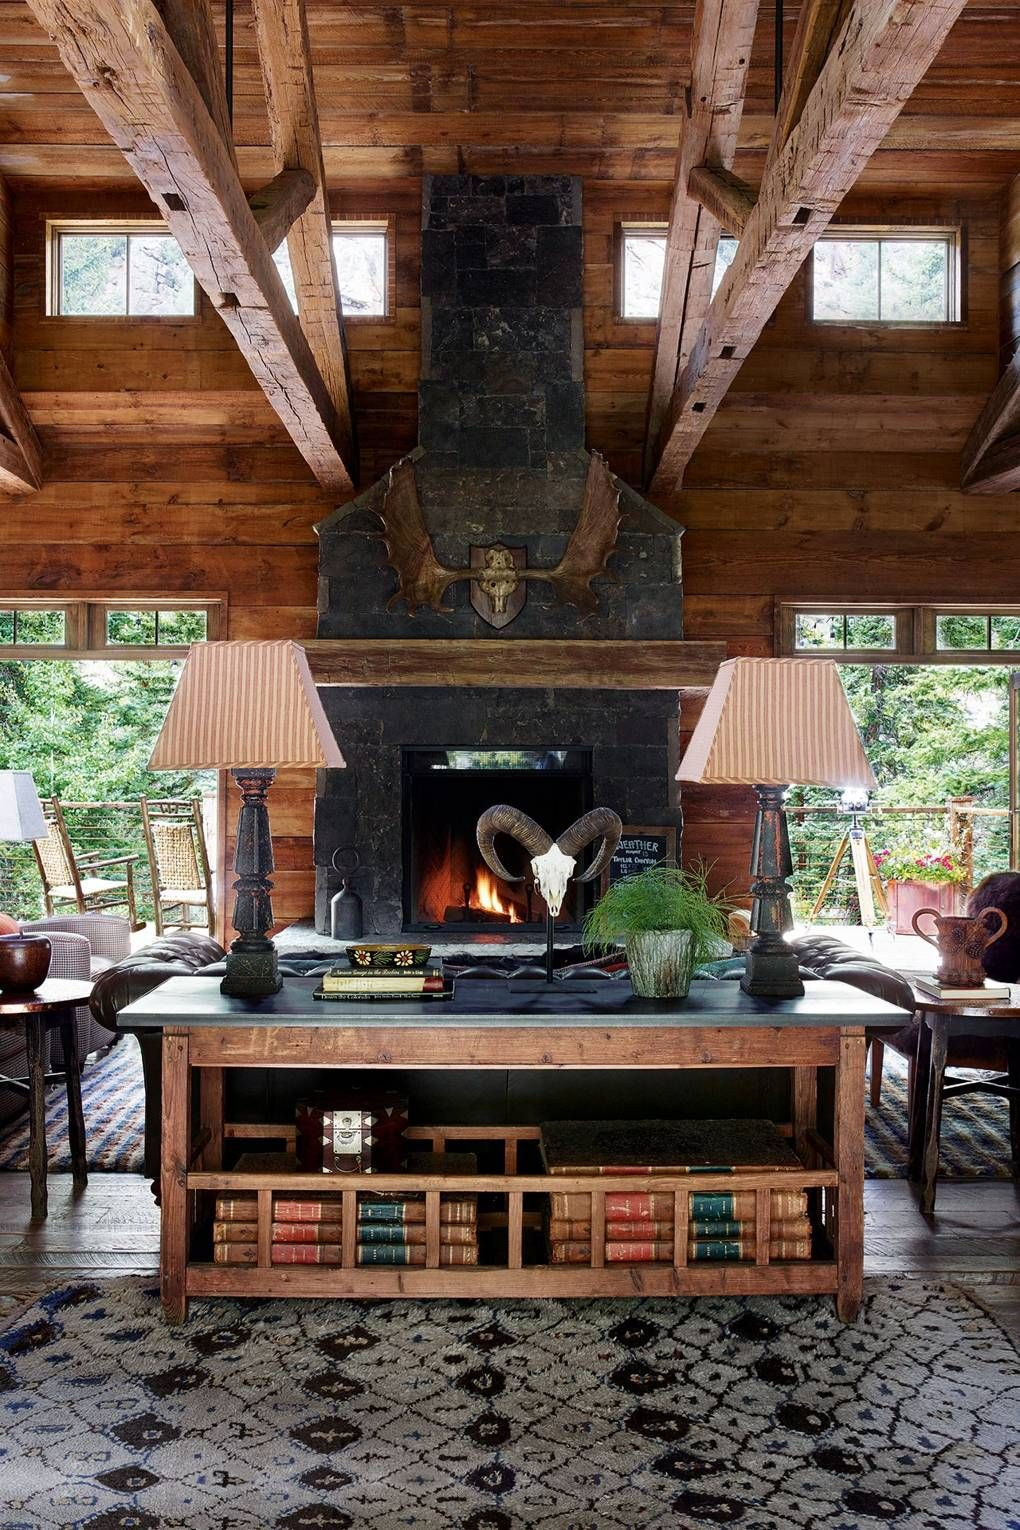 An offgrid & achingly stylish Rocky Mountain retreat (с